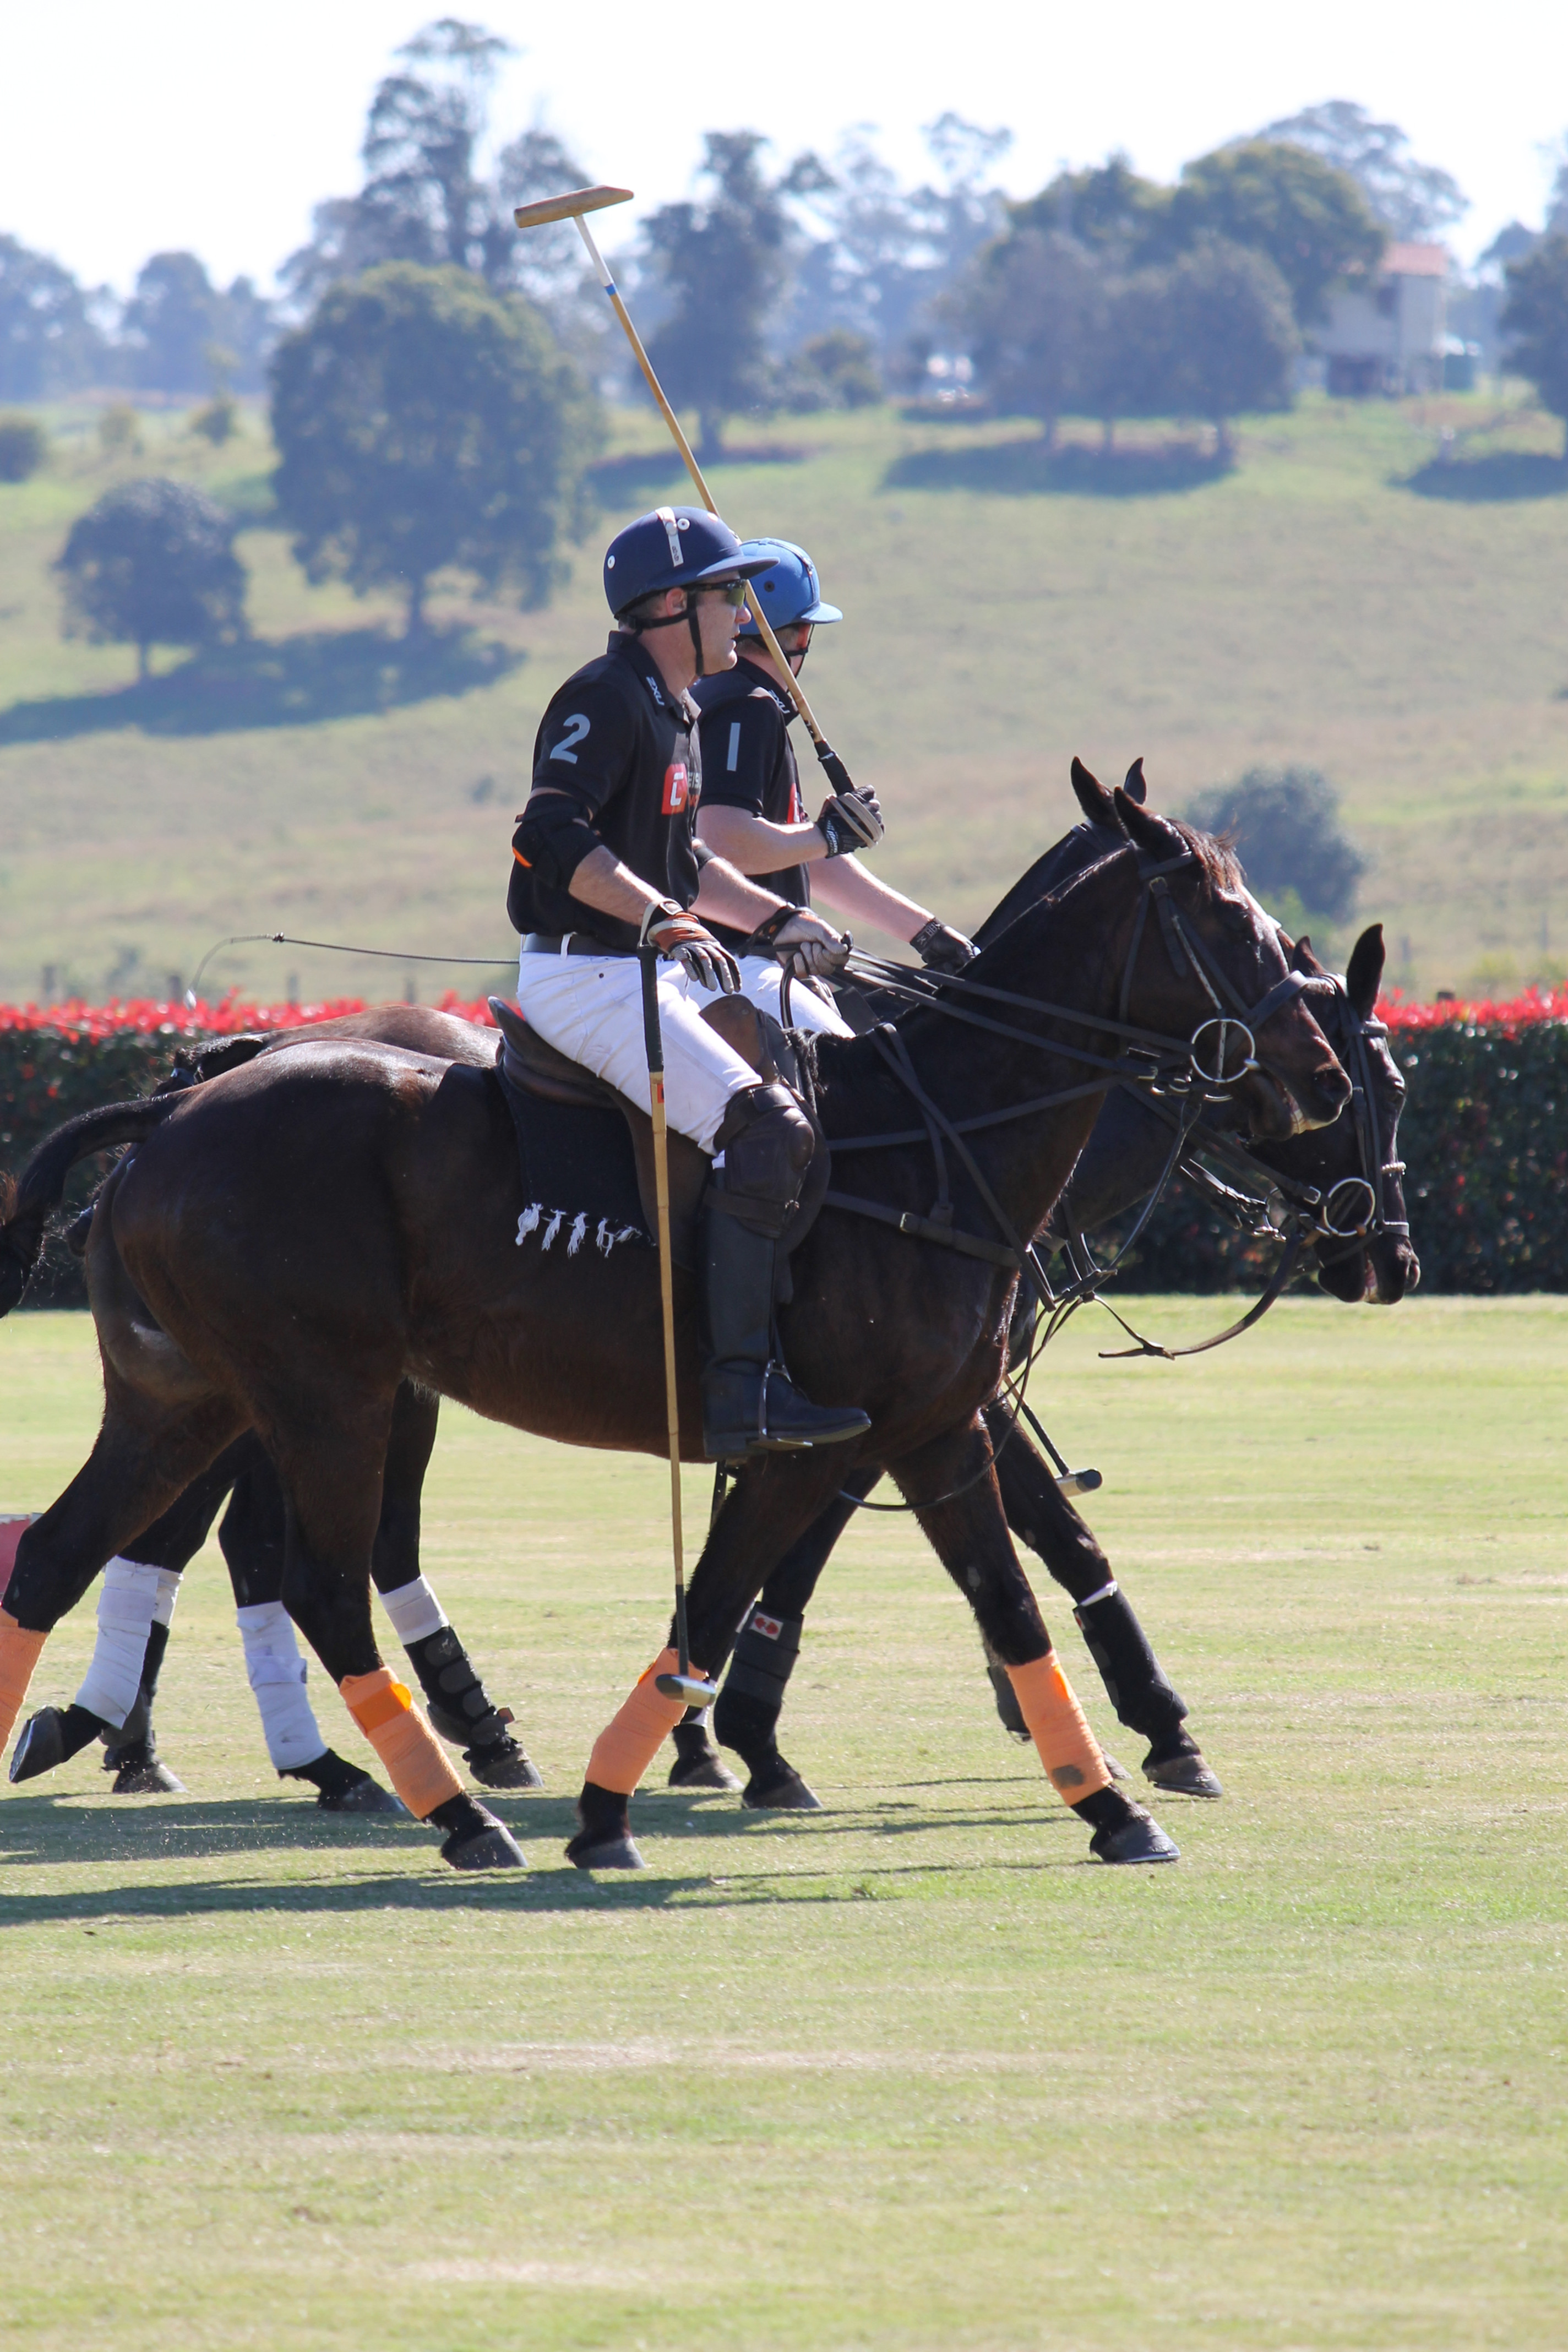 Learn to Play Polo